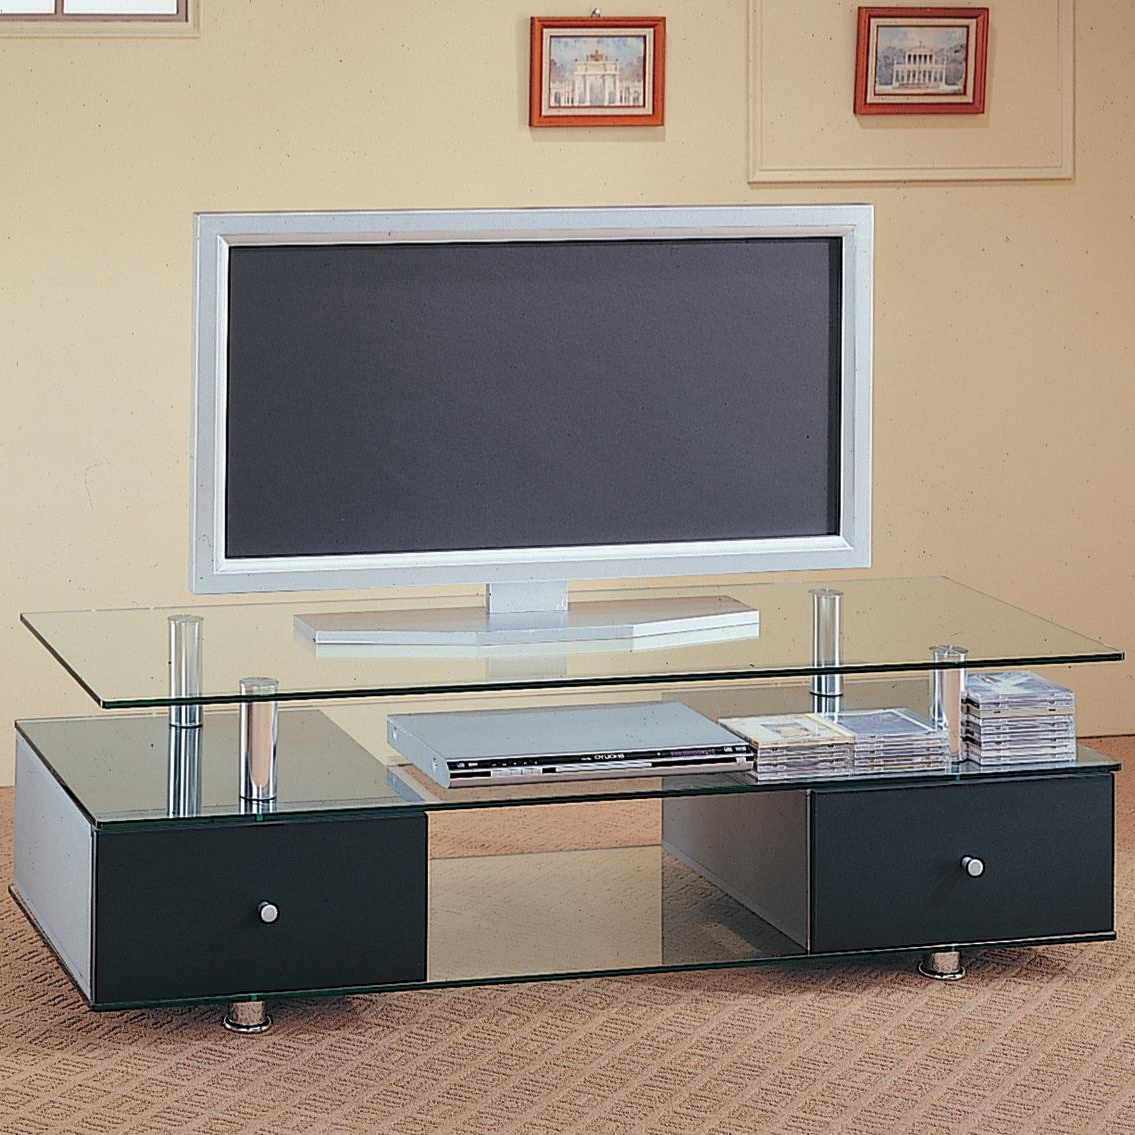 Contemporary Glass Tv Stands Inside Most Recently Released Tv Stands Contemporary Glass Media Console With Drawers Lowest Price (View 6 of 20)